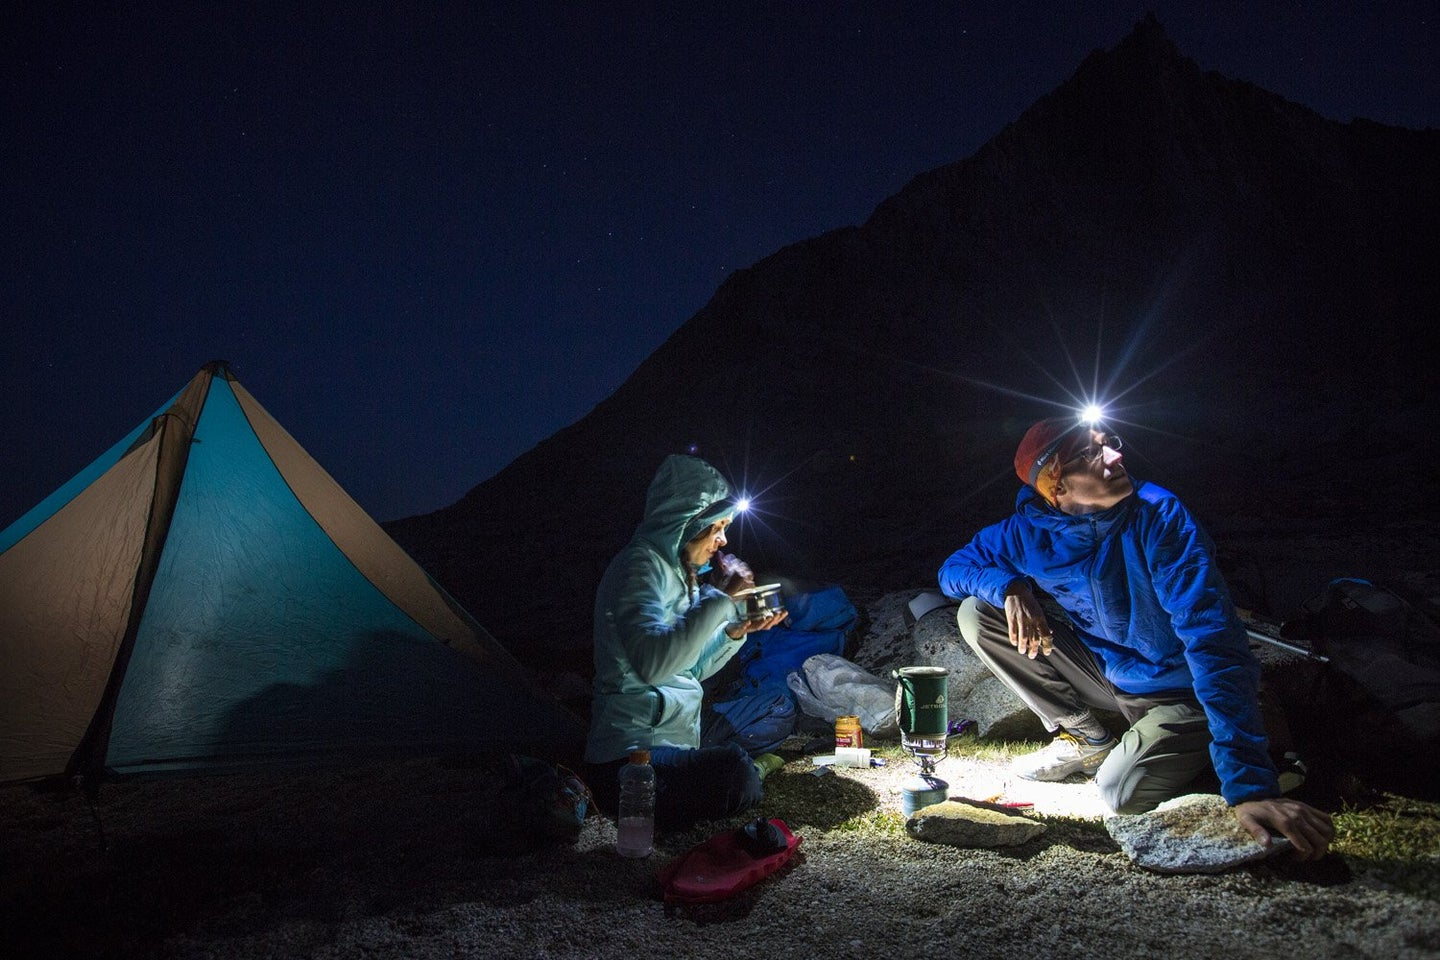 Campers using Black Diamond Headlamps at a campsite at night.